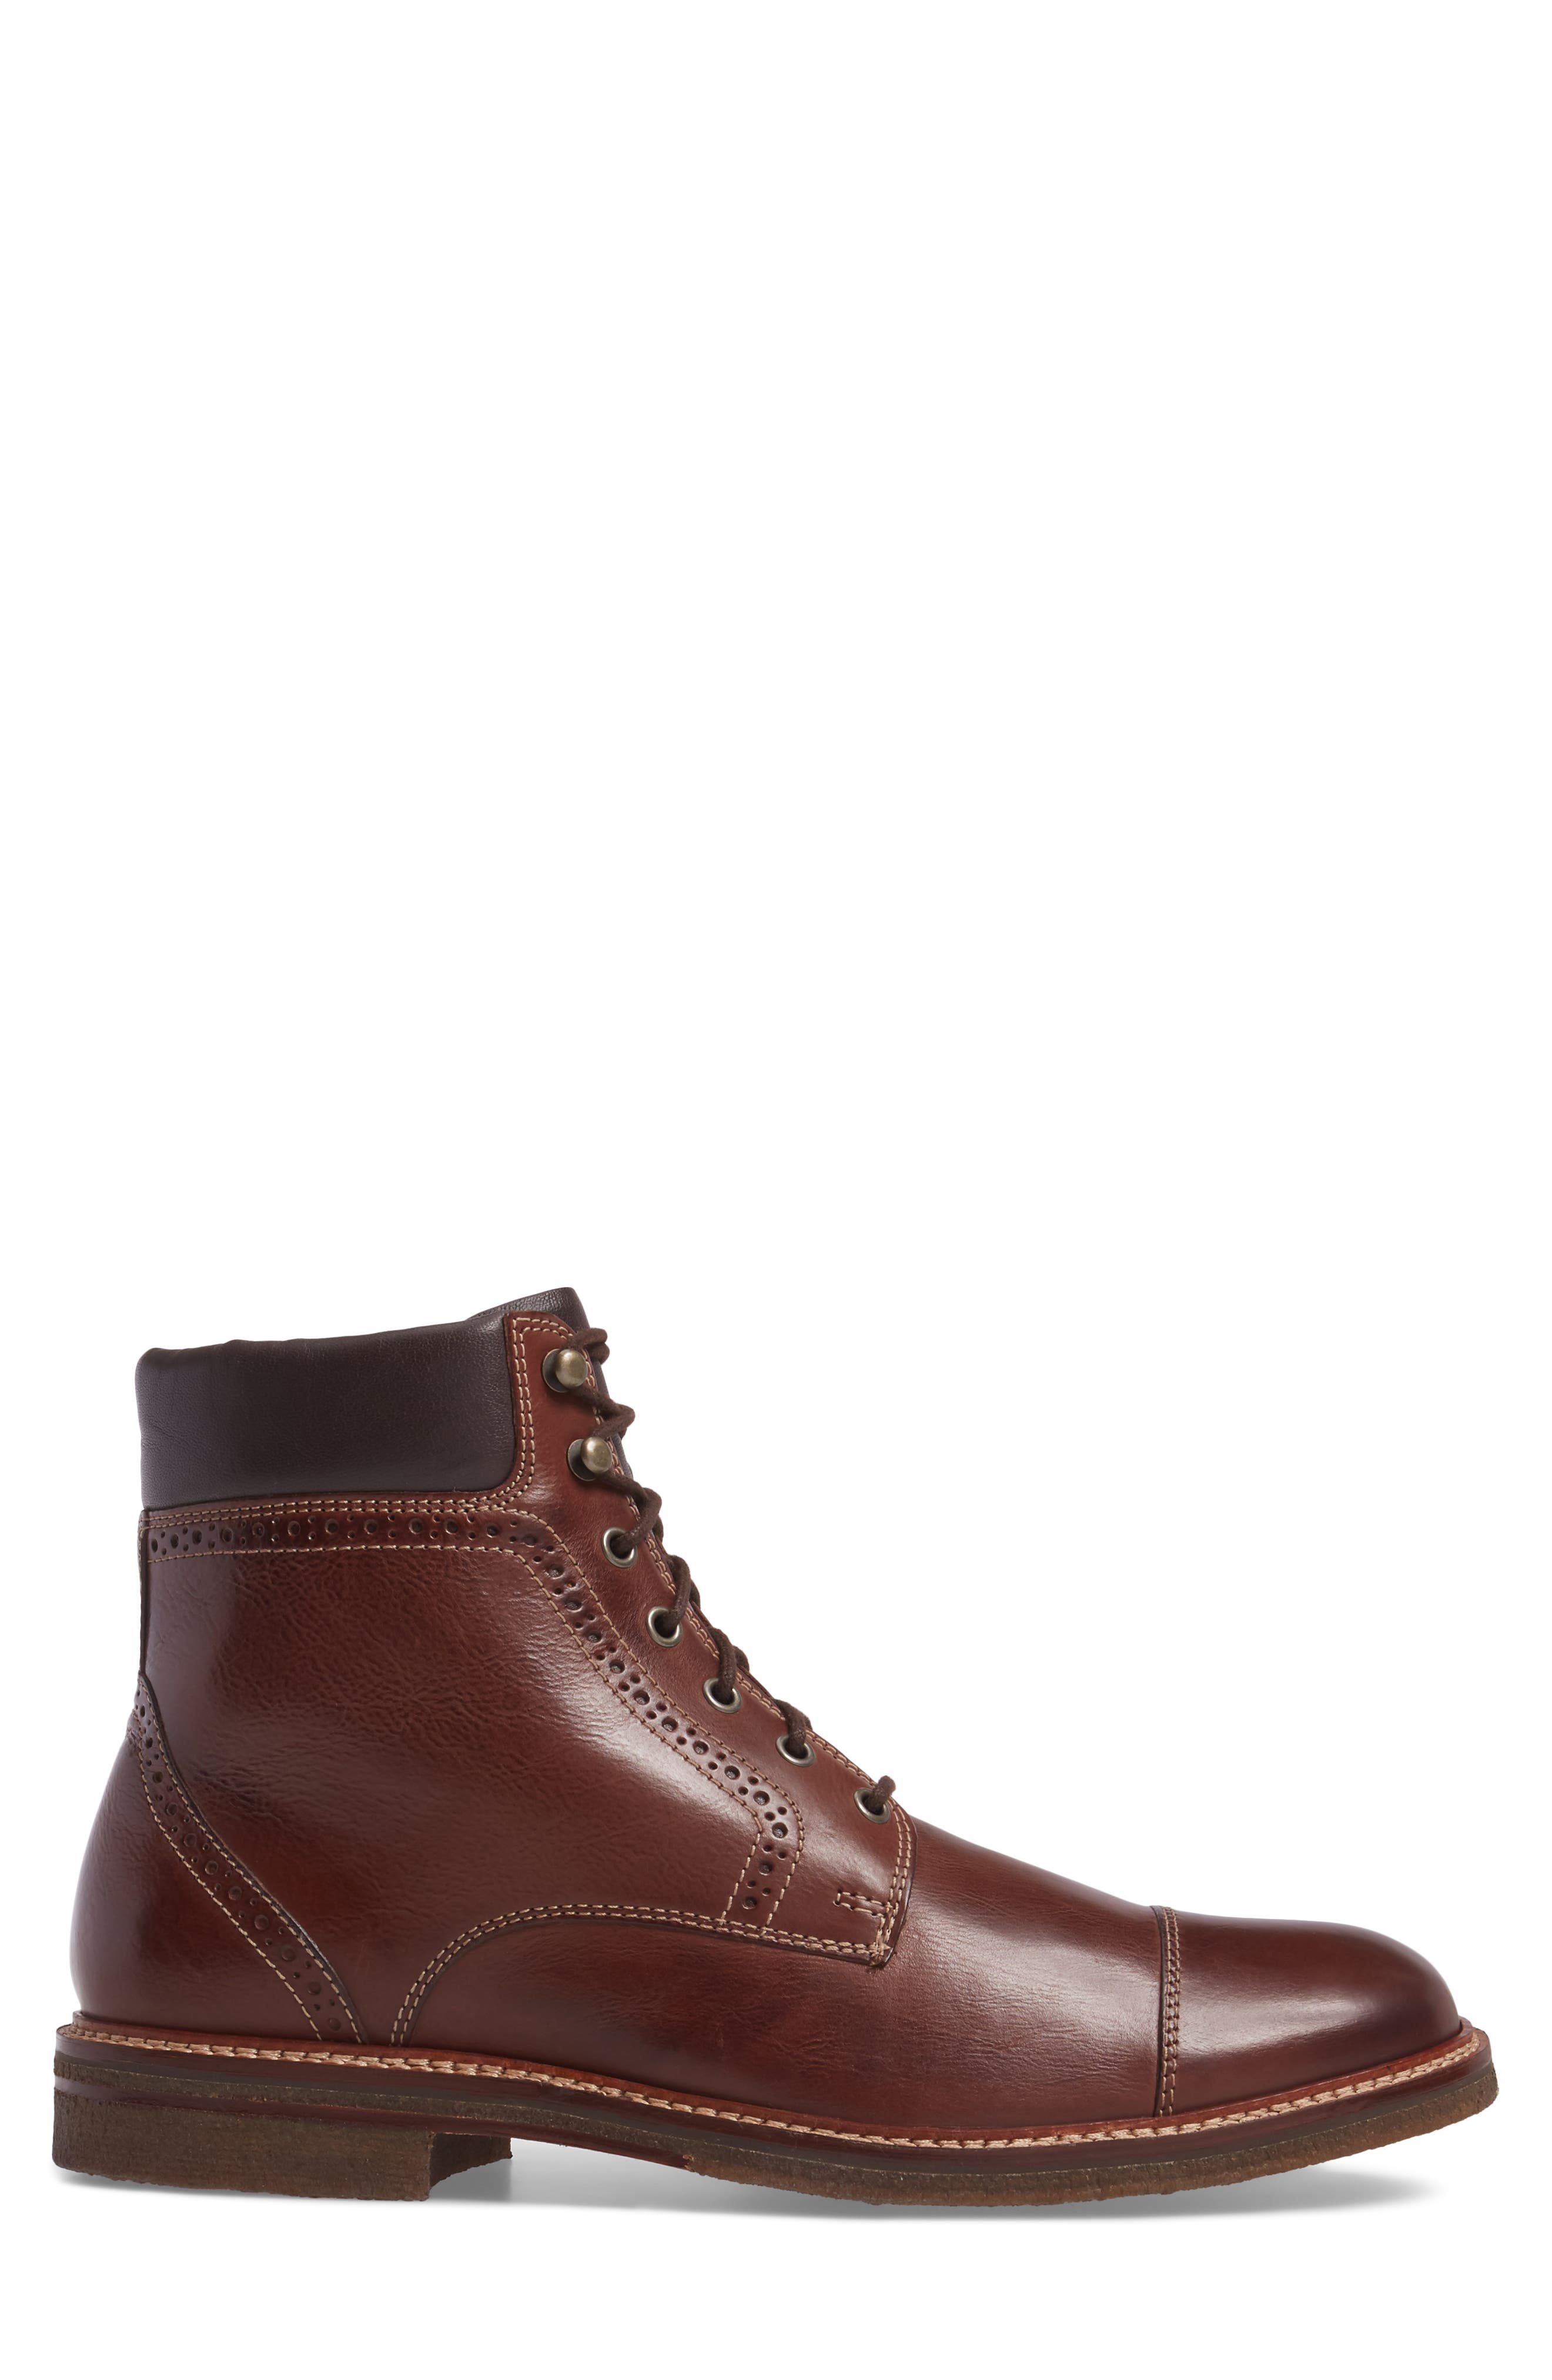 Forrester Cap Toe Boot,                             Alternate thumbnail 3, color,                             Mahogany Leather